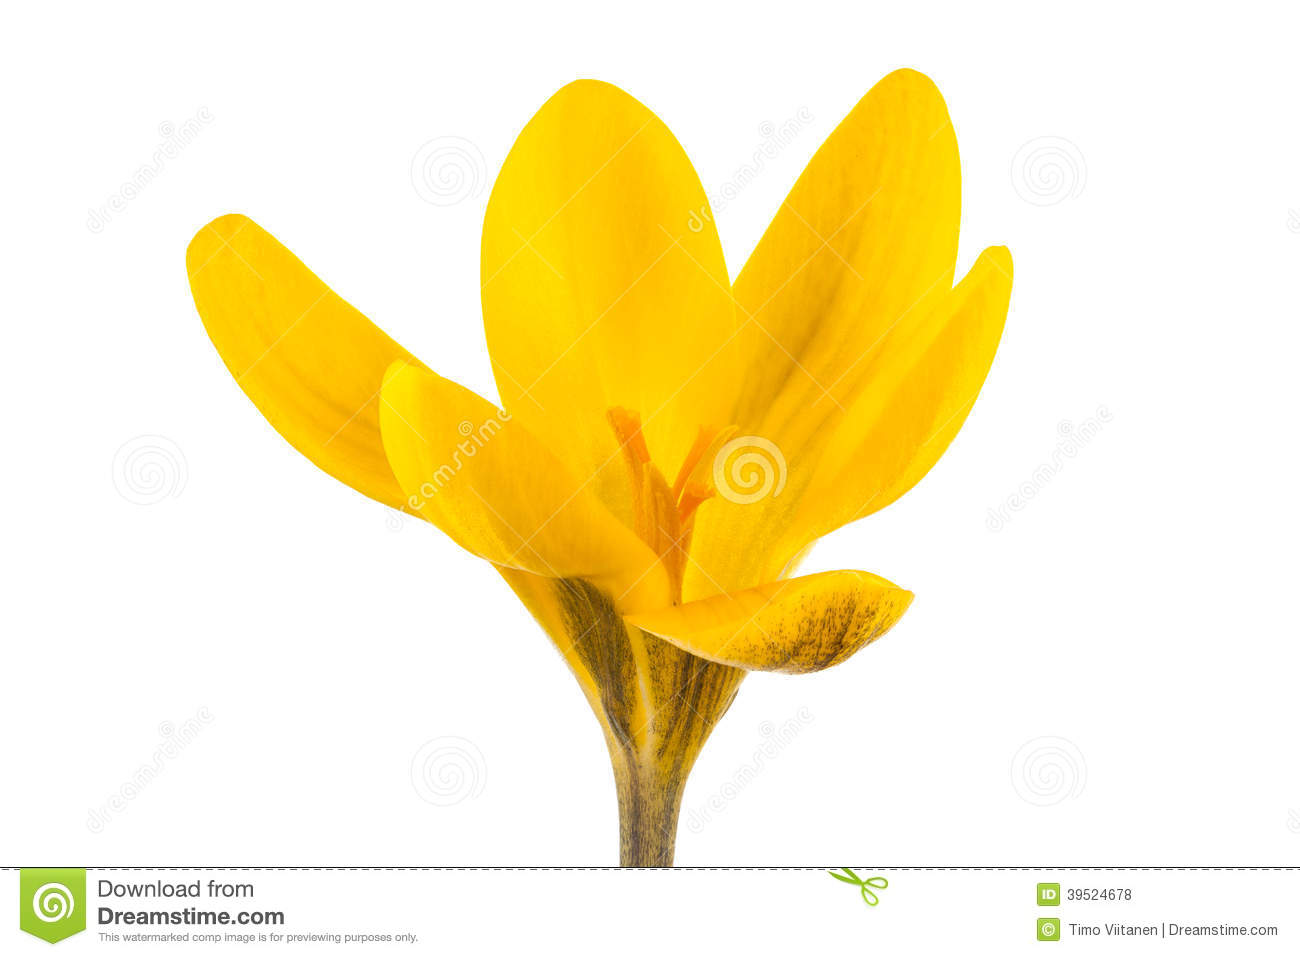 Yellow crocus clipart - Clipground